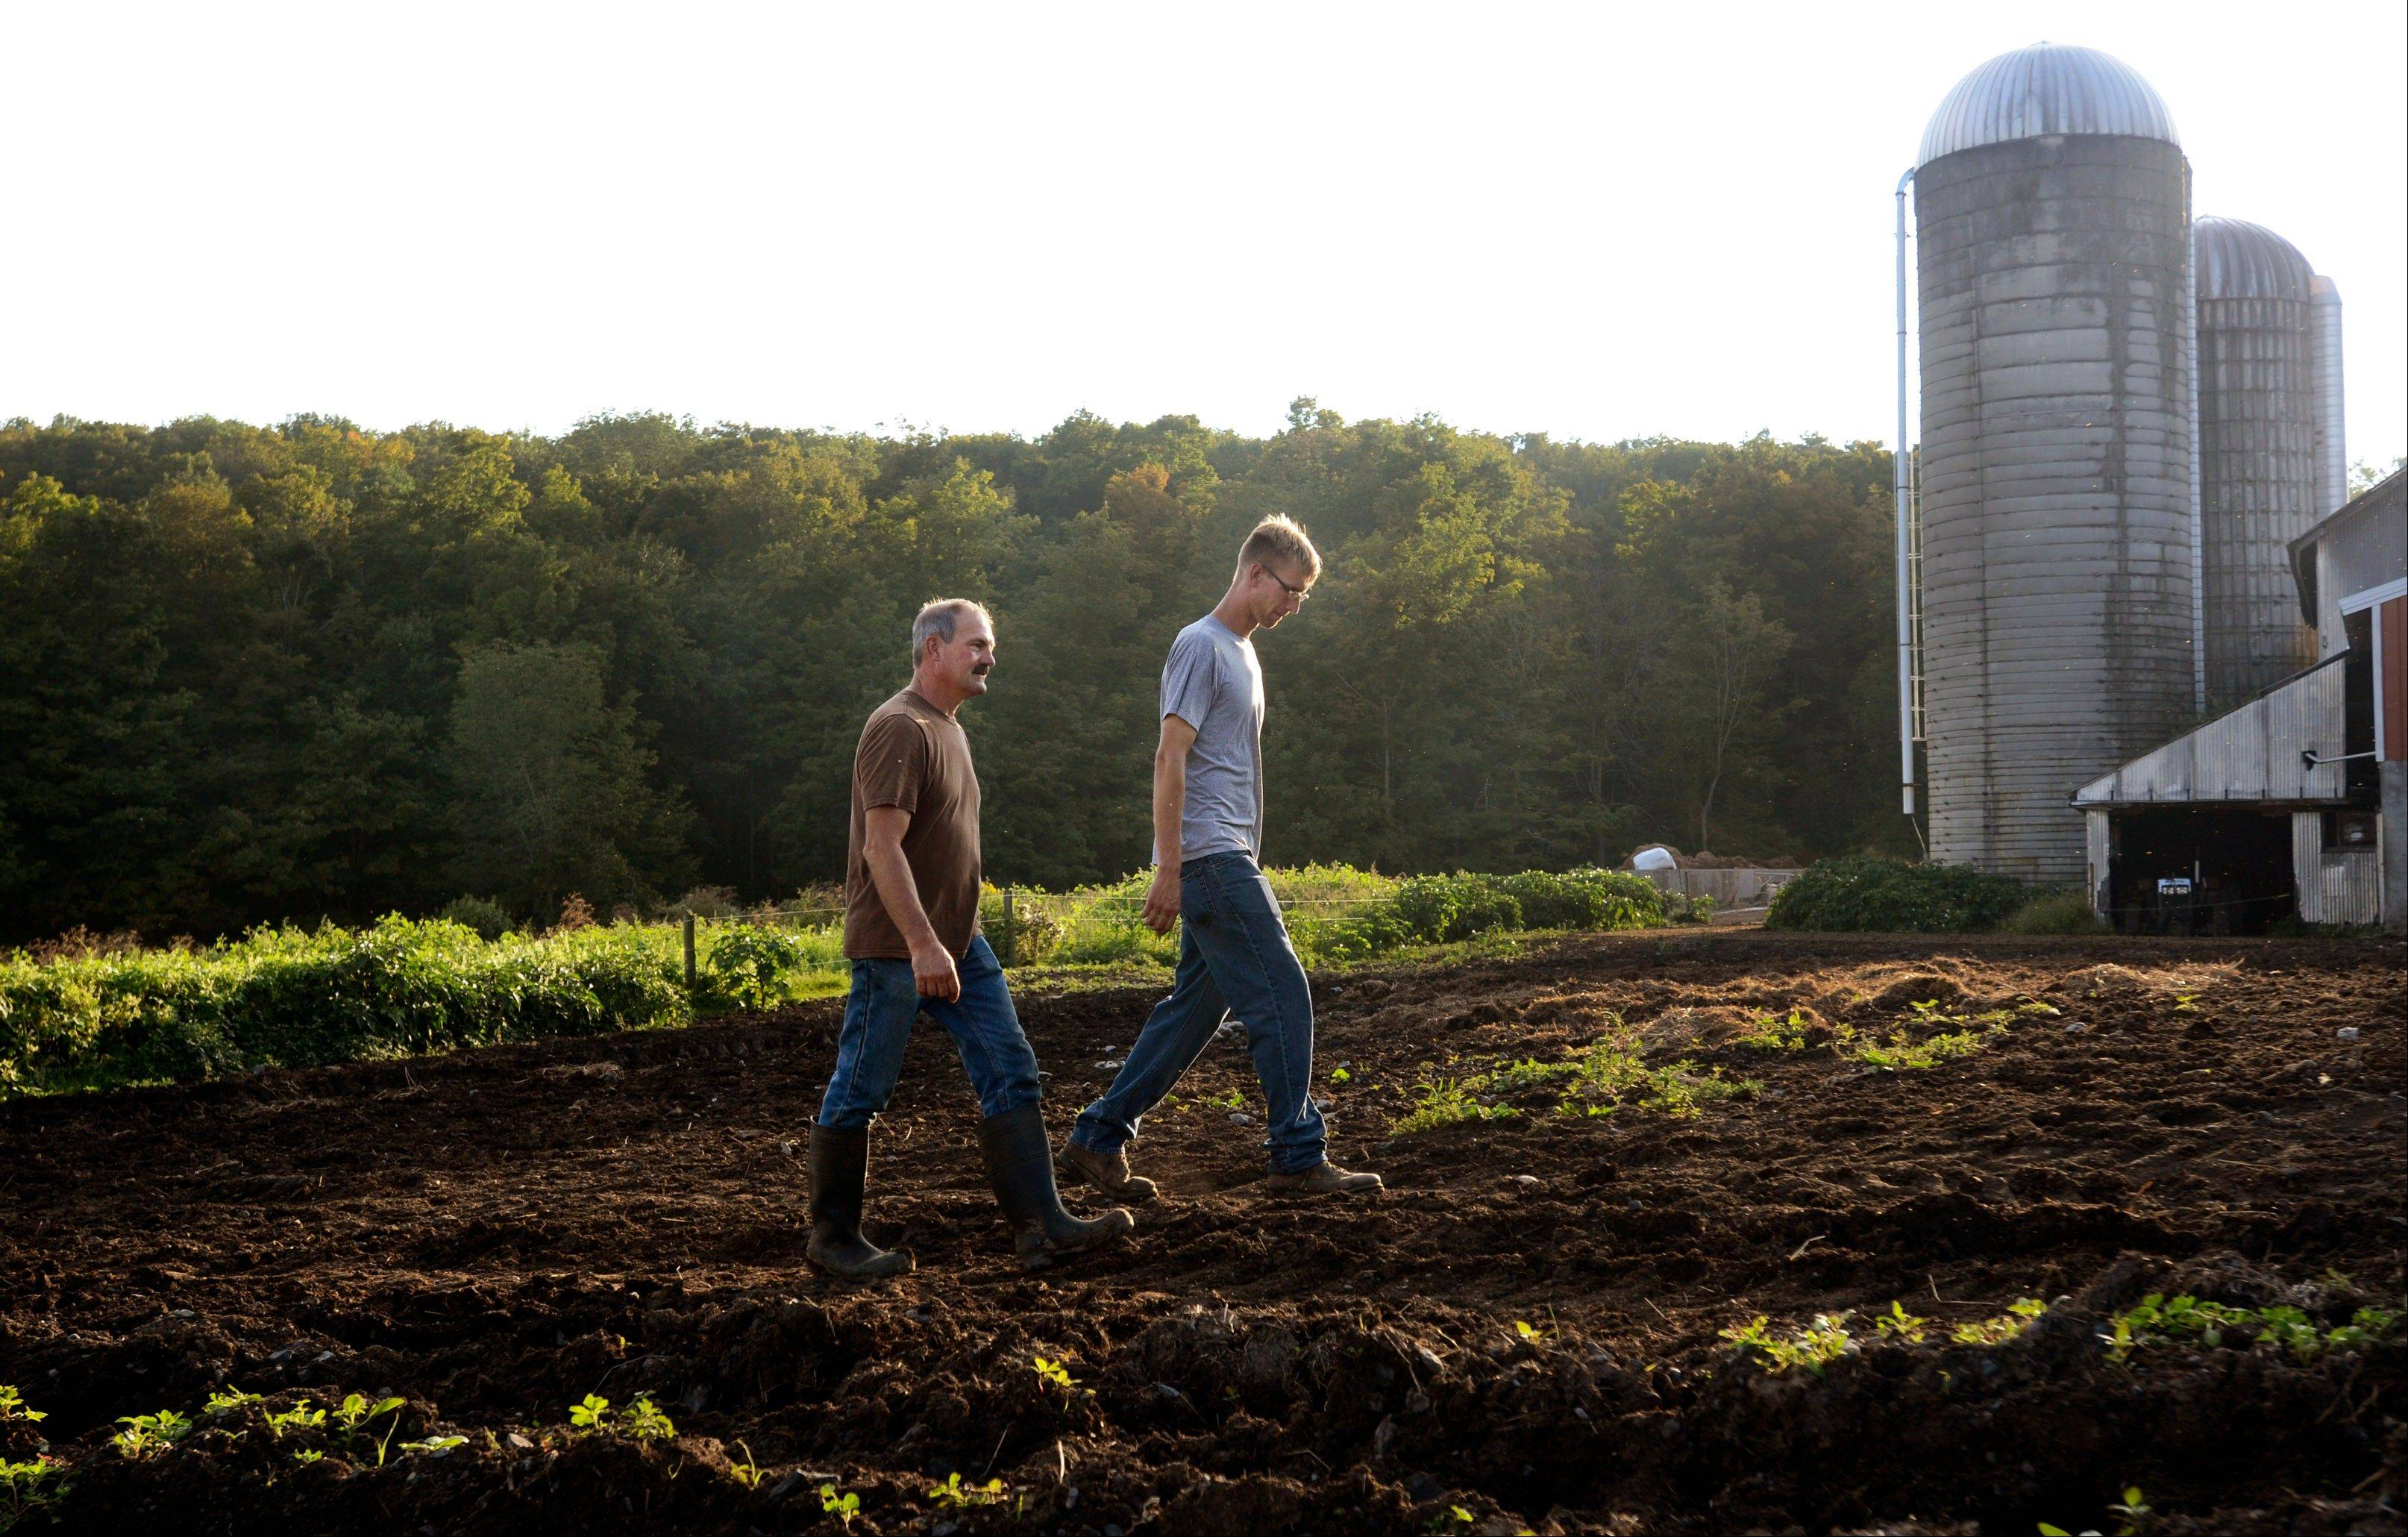 In this Aug. 29, 2013, photo, Dan Dimon, right, walks with his father-in-law, Kevin Carley, through a pasture at The Carley Farms in Pompey, N.Y. Dimon is in the process of buying the dairy and agricultural farm that has been in the Carley family since 1938, in phases.